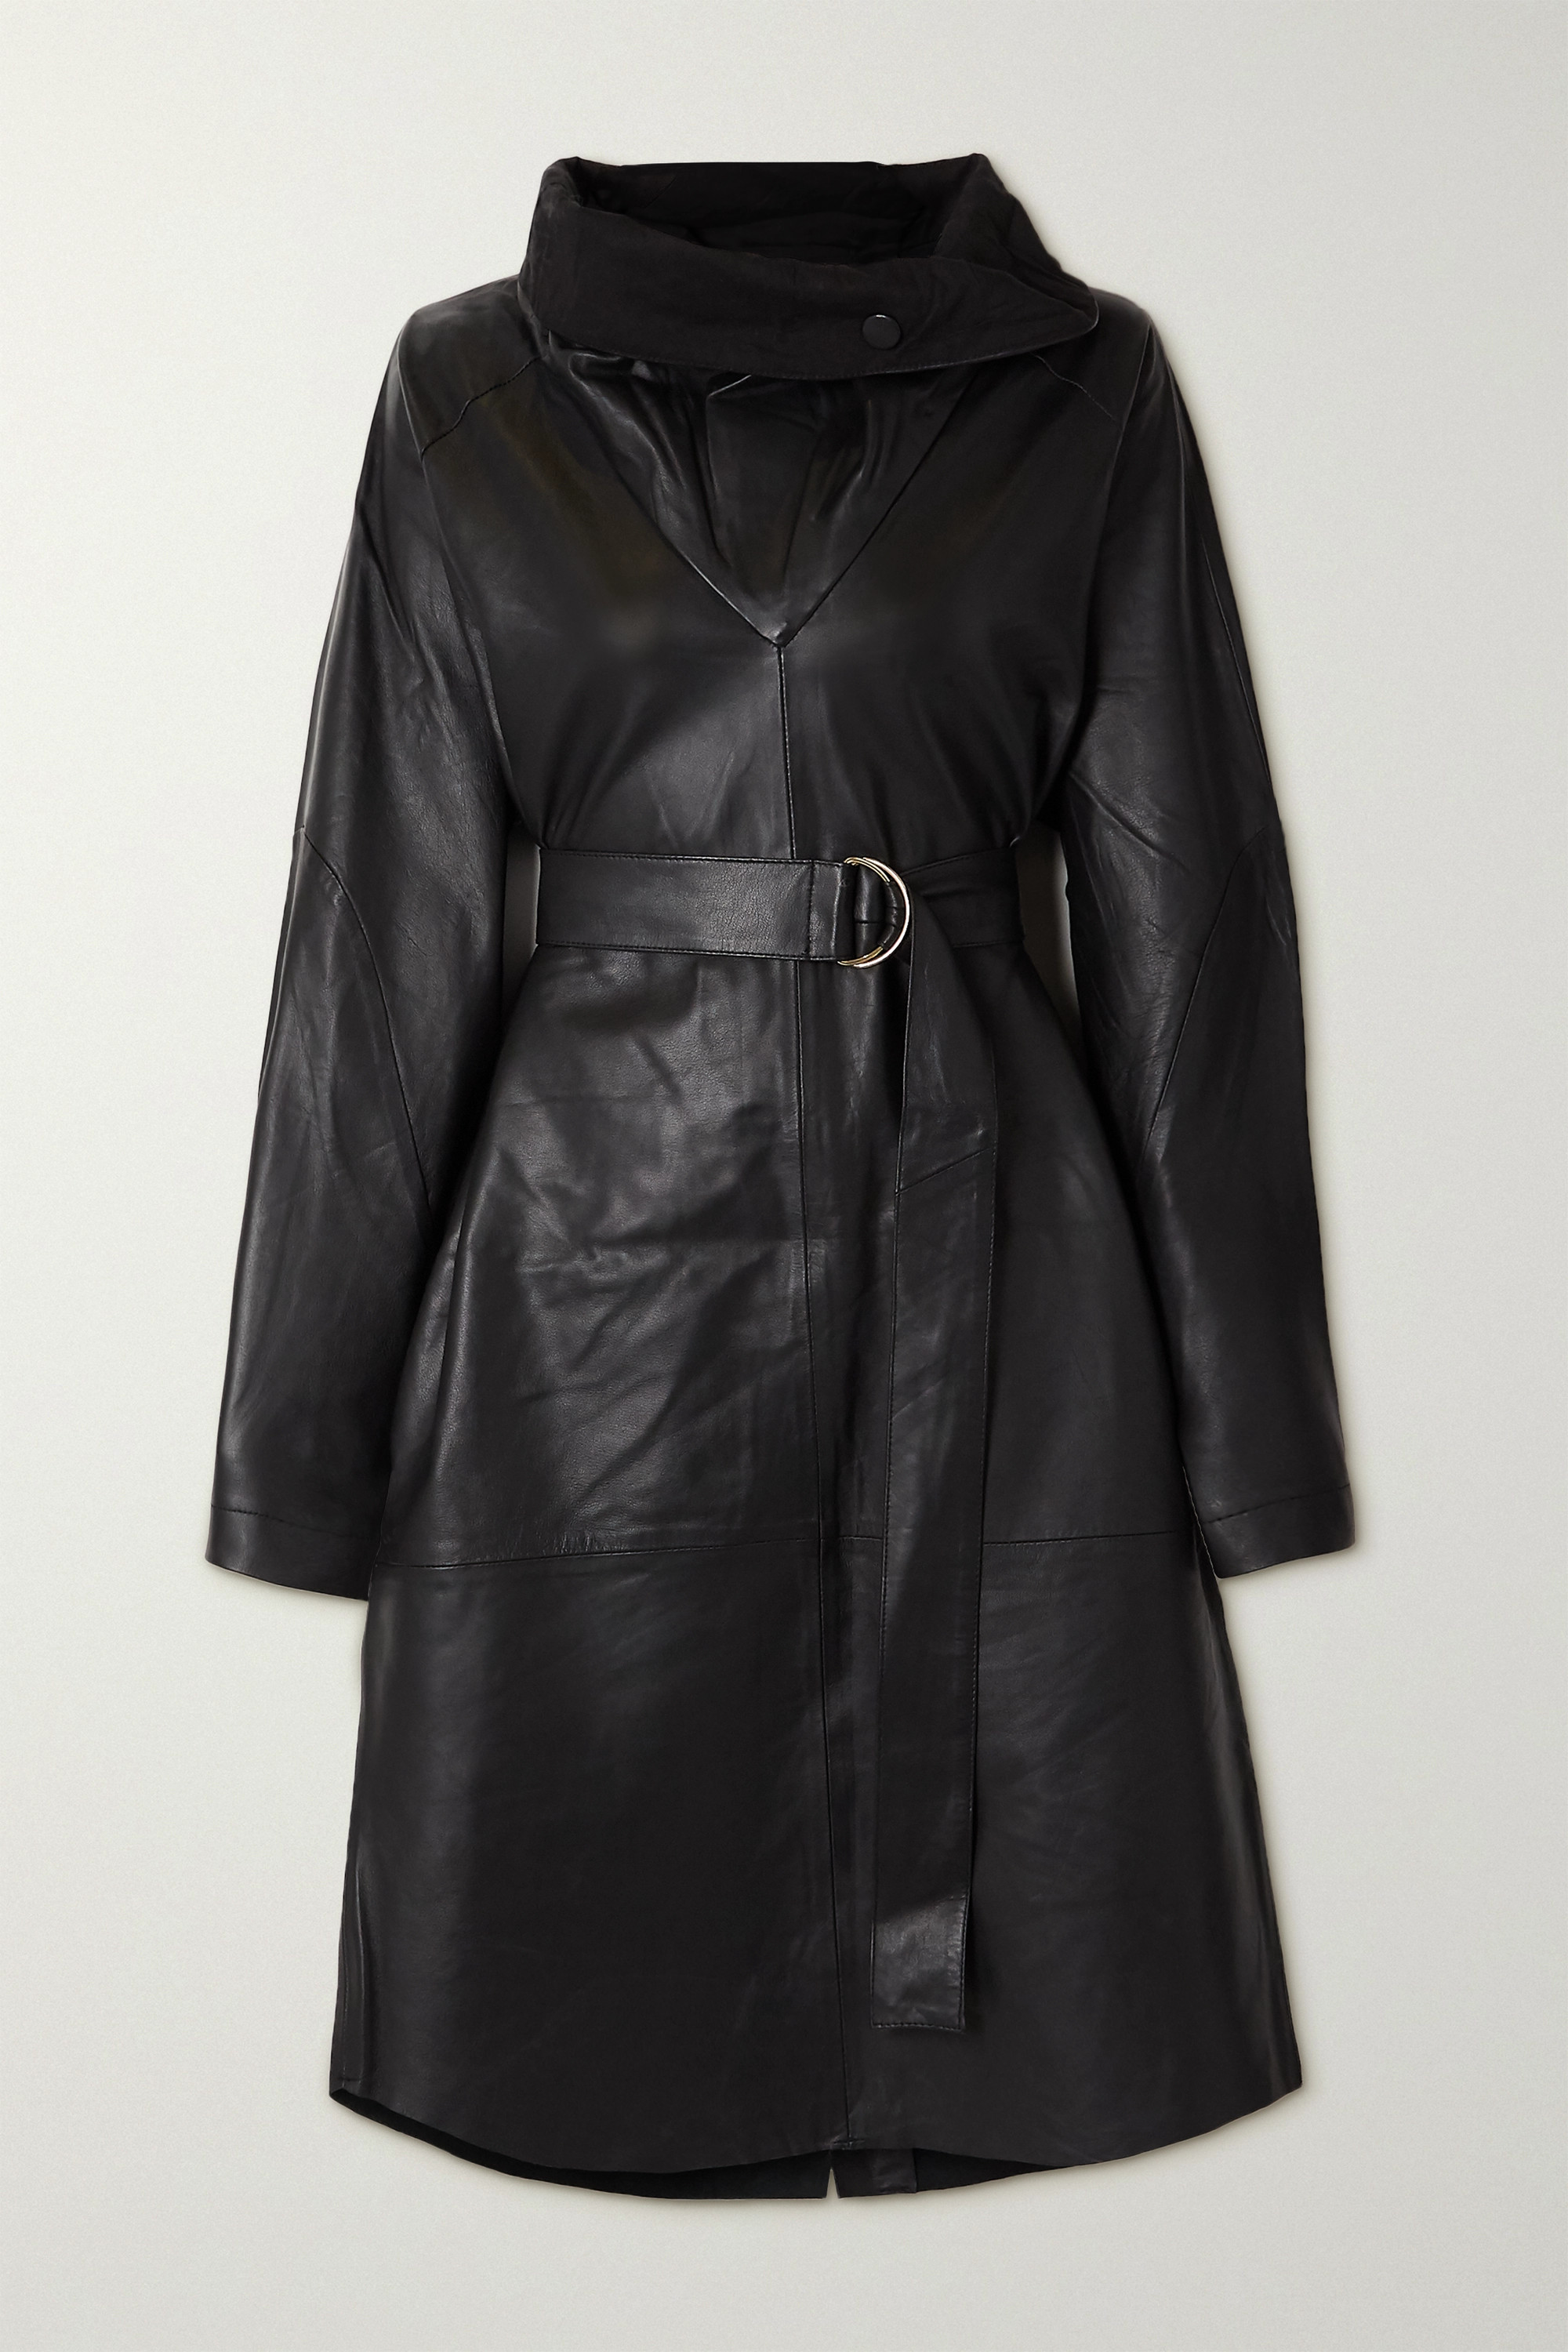 REMAIN Birger Christensen Sortie belted leather dress